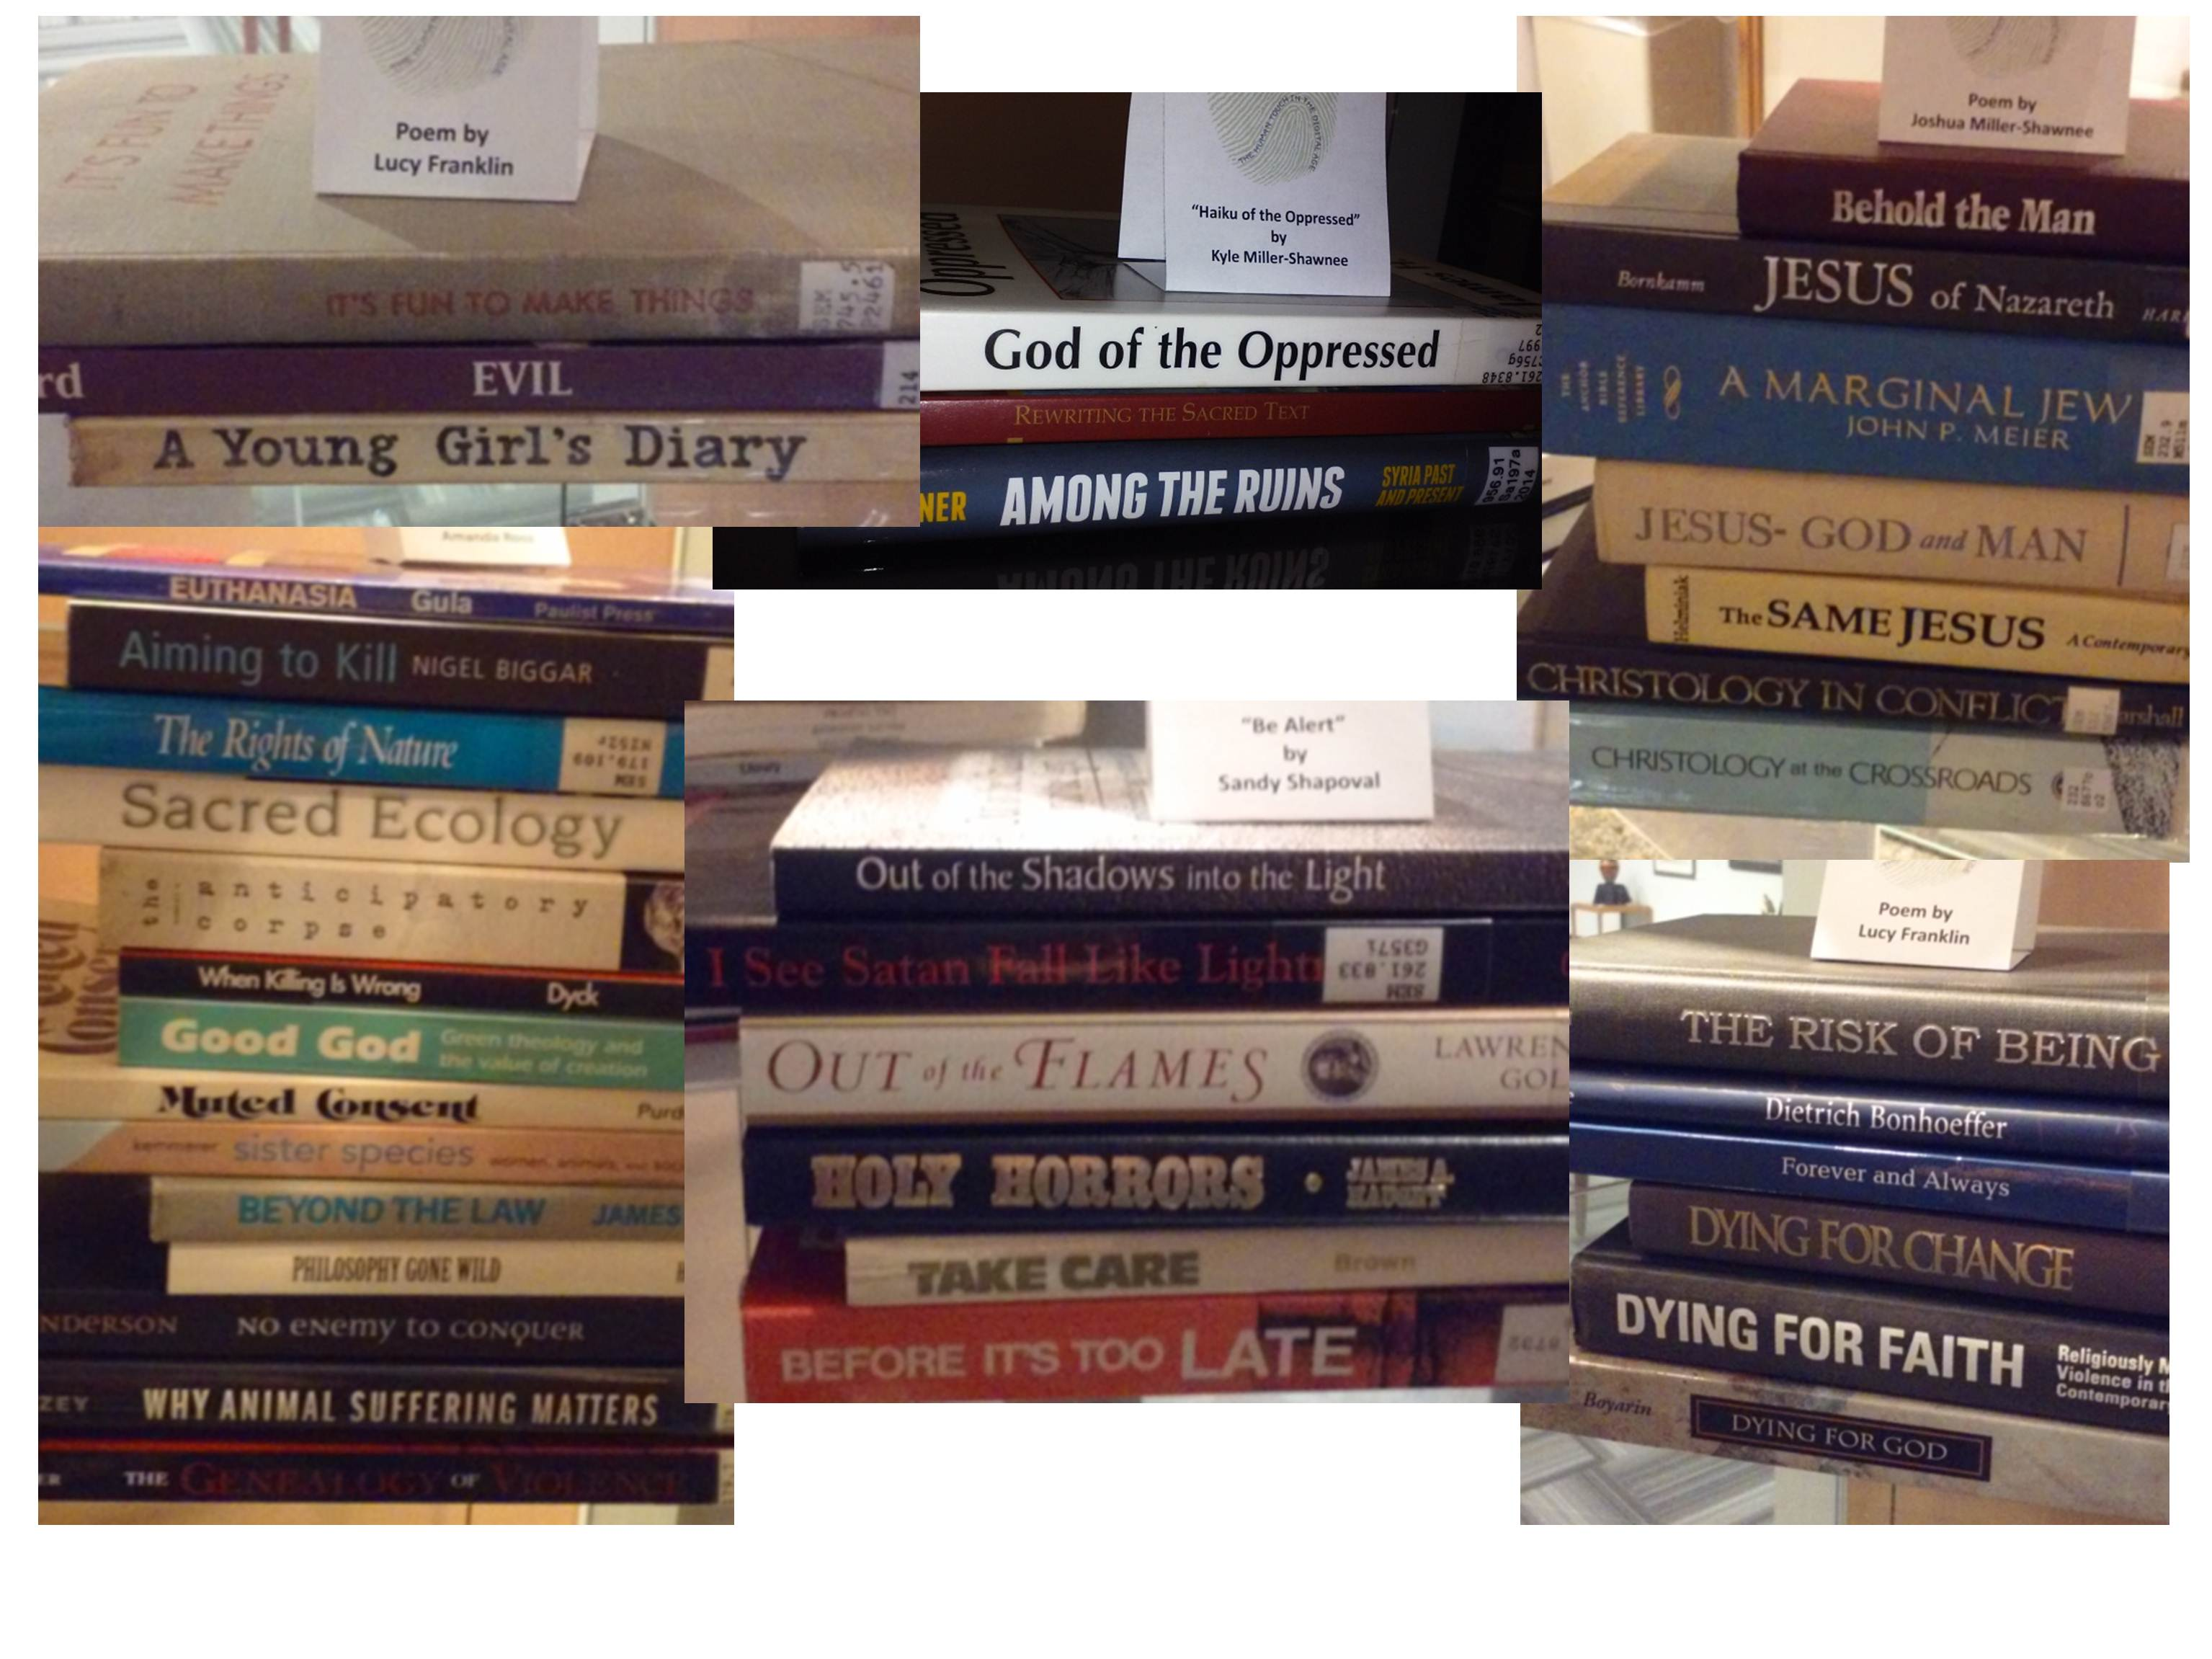 TLM 2016 Book Spine Poetry Phillips Seminary Library